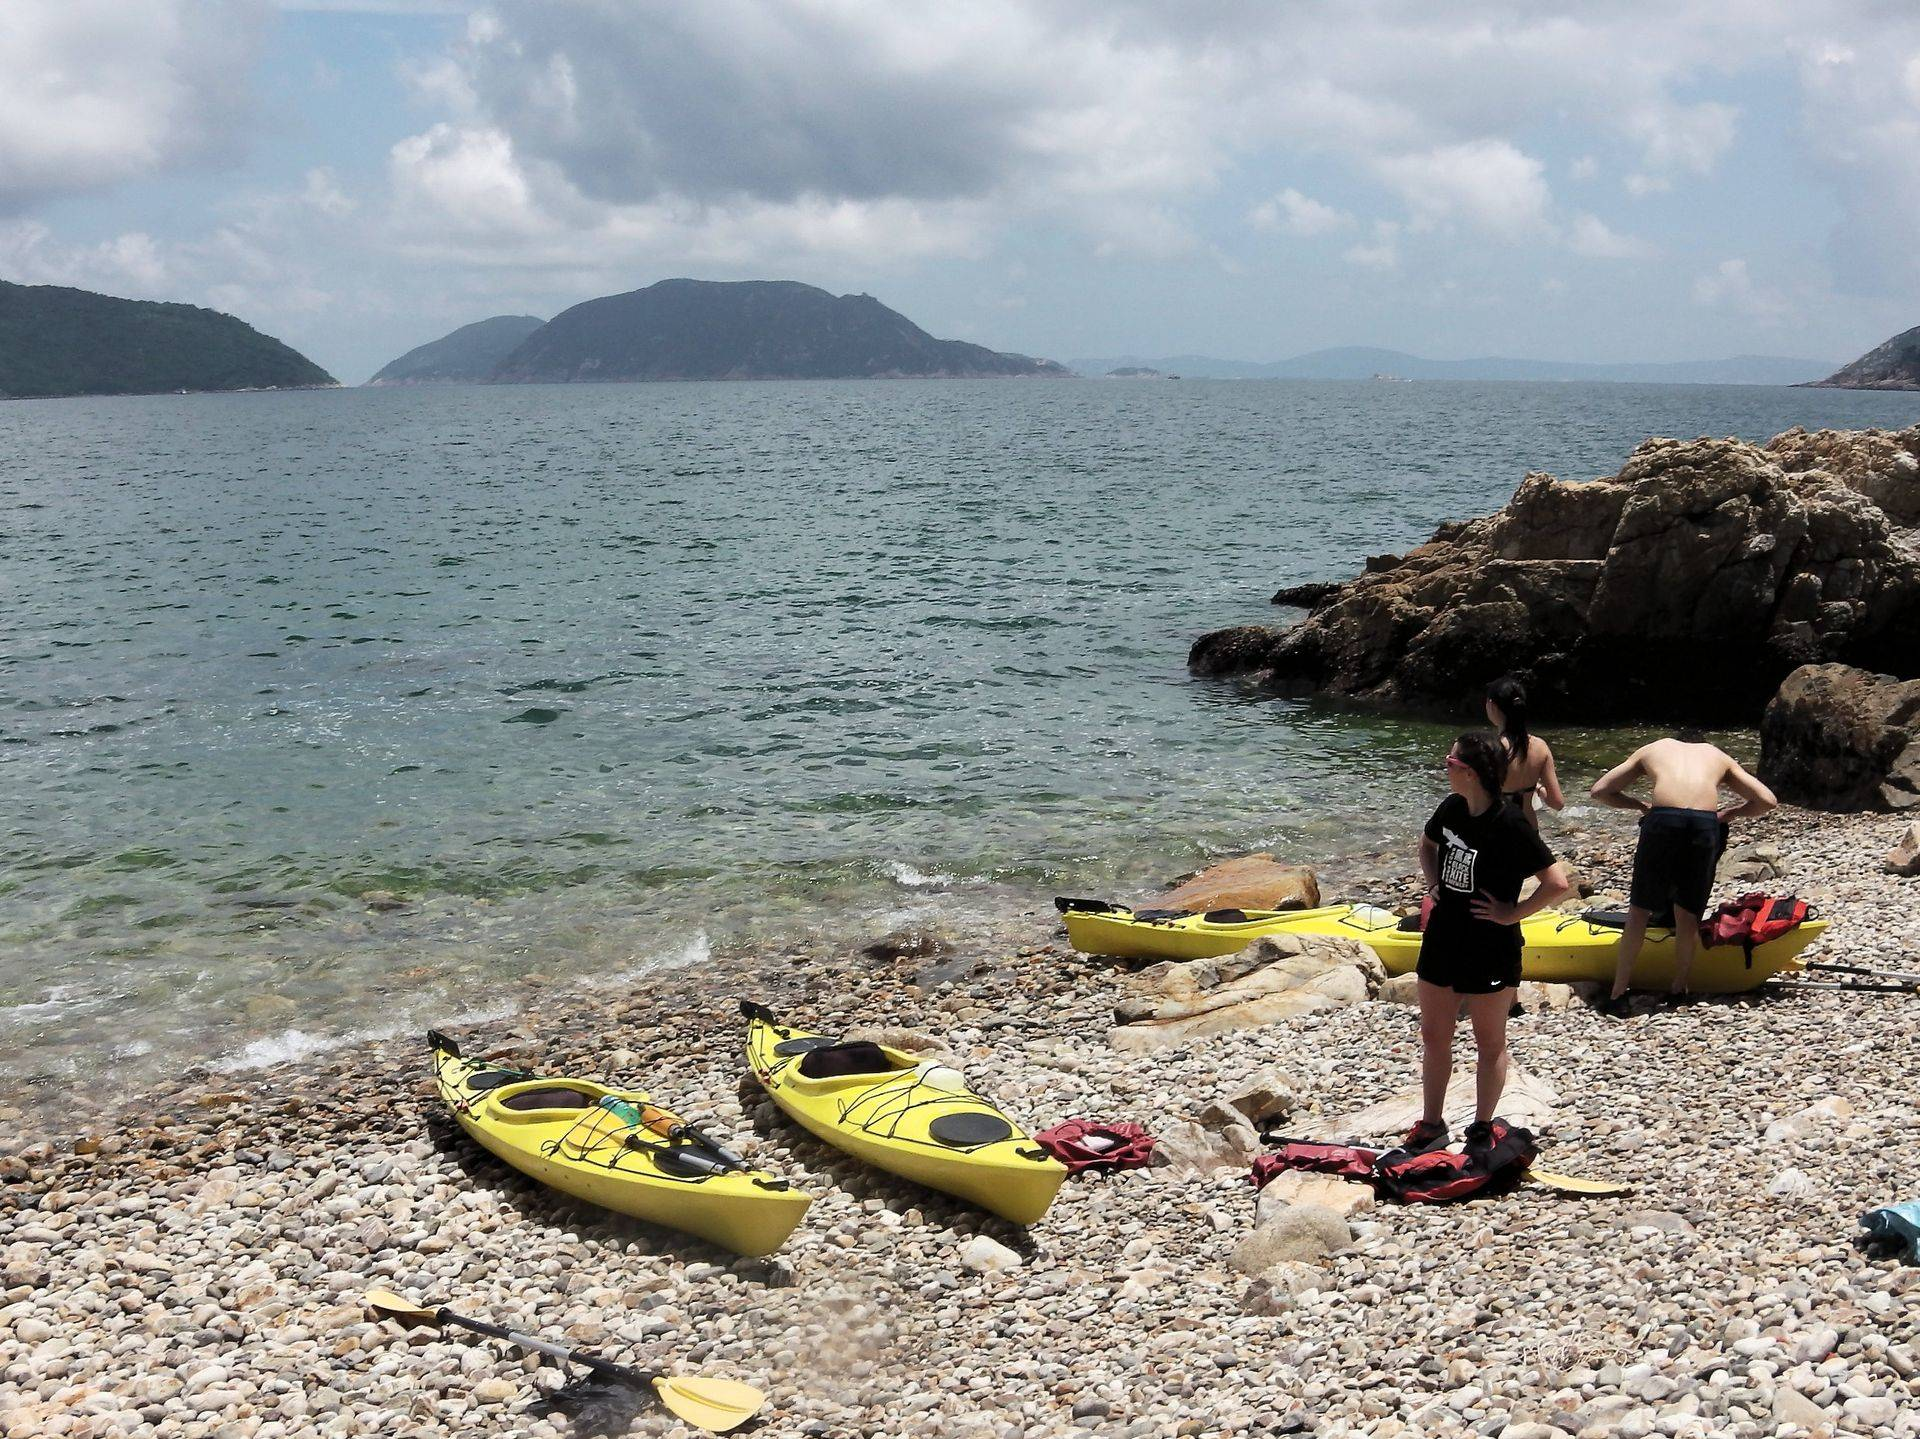 Sea Kayak Hong Kong 2018 Jul 26 Hong Kong Island_22